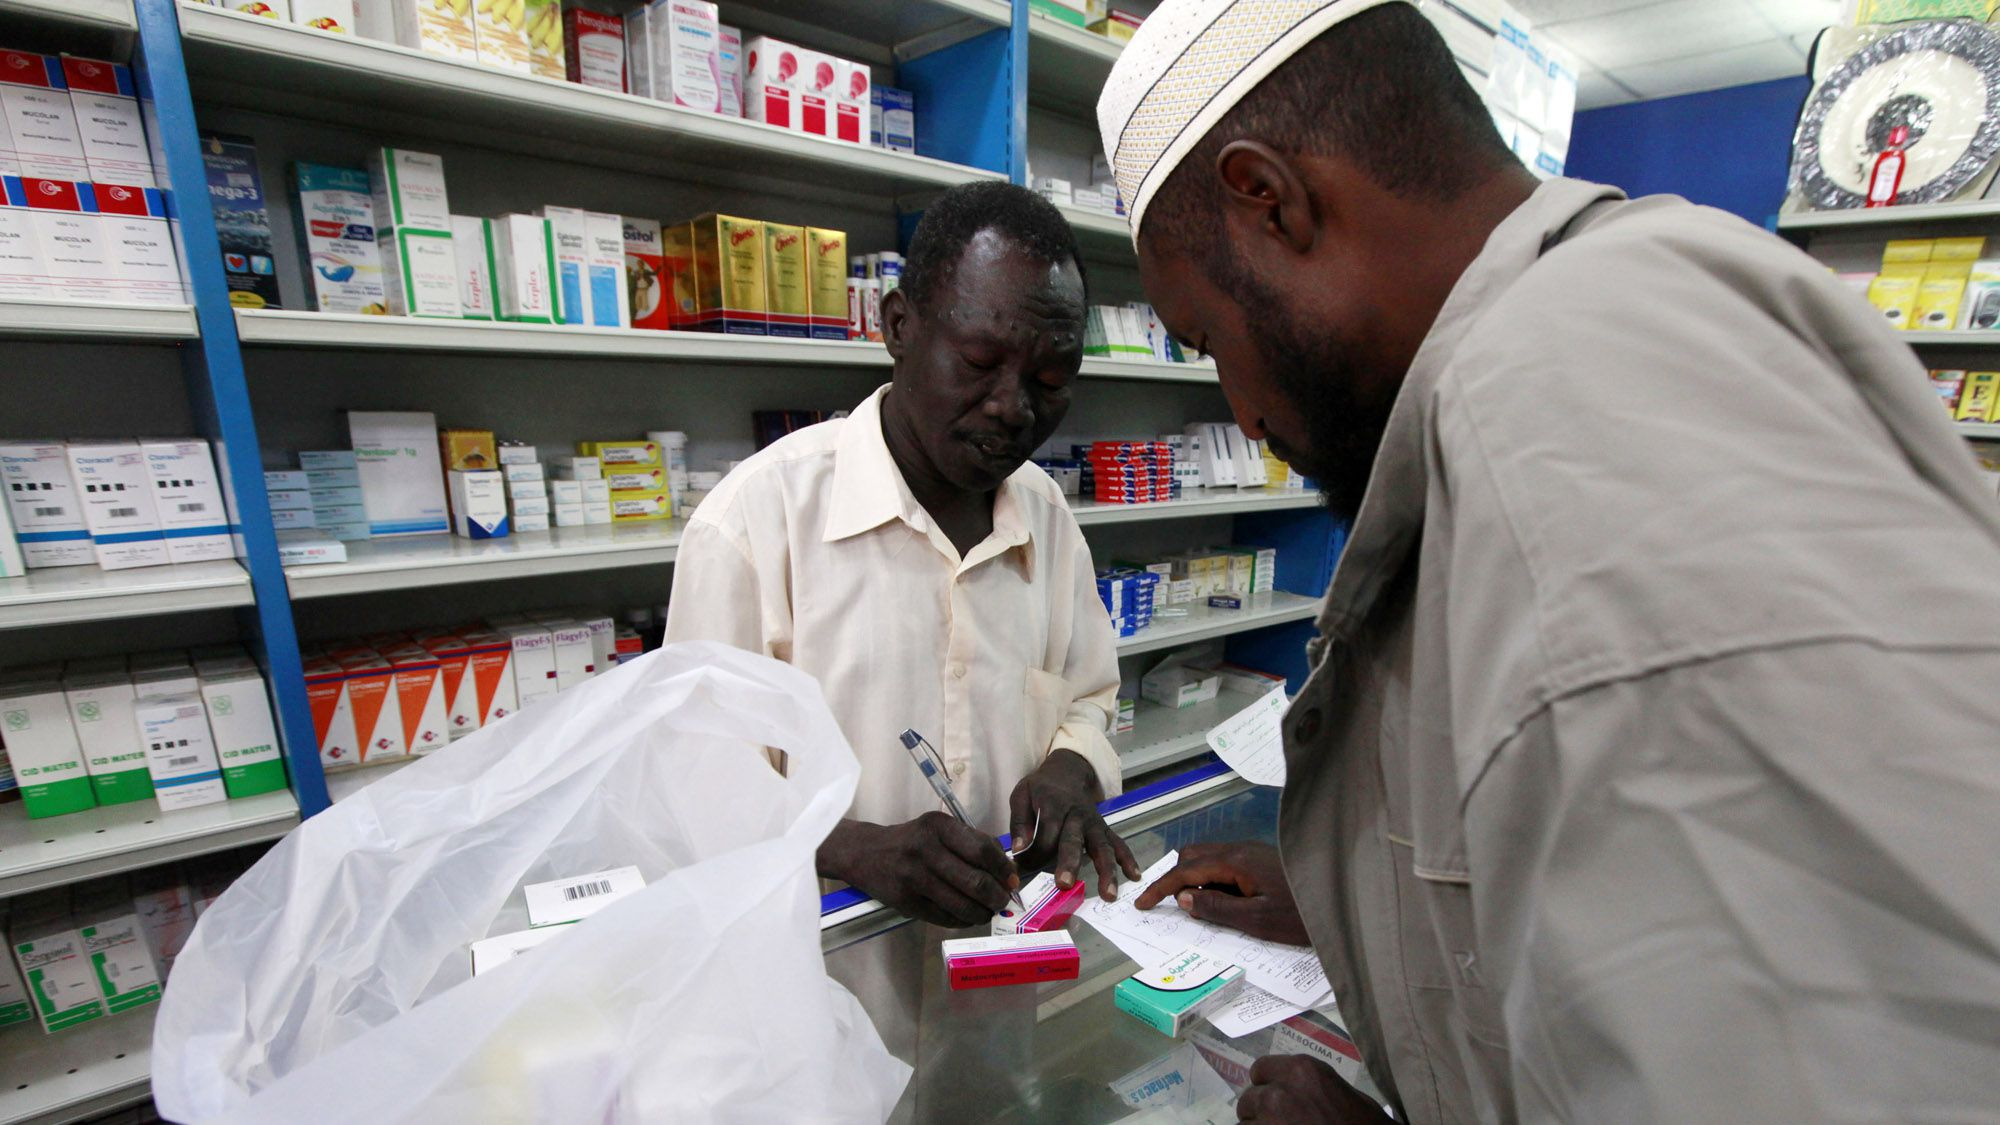 A customer buys medication at a pharmacy in Khartoum, January 24, 2012. Doing business has never been easy in Sudan, which suffers from a U.S. trade embargo, poverty, high inflation and the legacy of years of armed conflict. Even so the country, home to 32 million people and rich in oil, minerals such as gold and copper, and vast areas of farmland, has always attracted investors who do not mind taking some risks. But the investment climate has deteriorated further since South Sudan took away two-thirds of the country's oil production when it seceded in July.  Picture taken January 24, 2012.